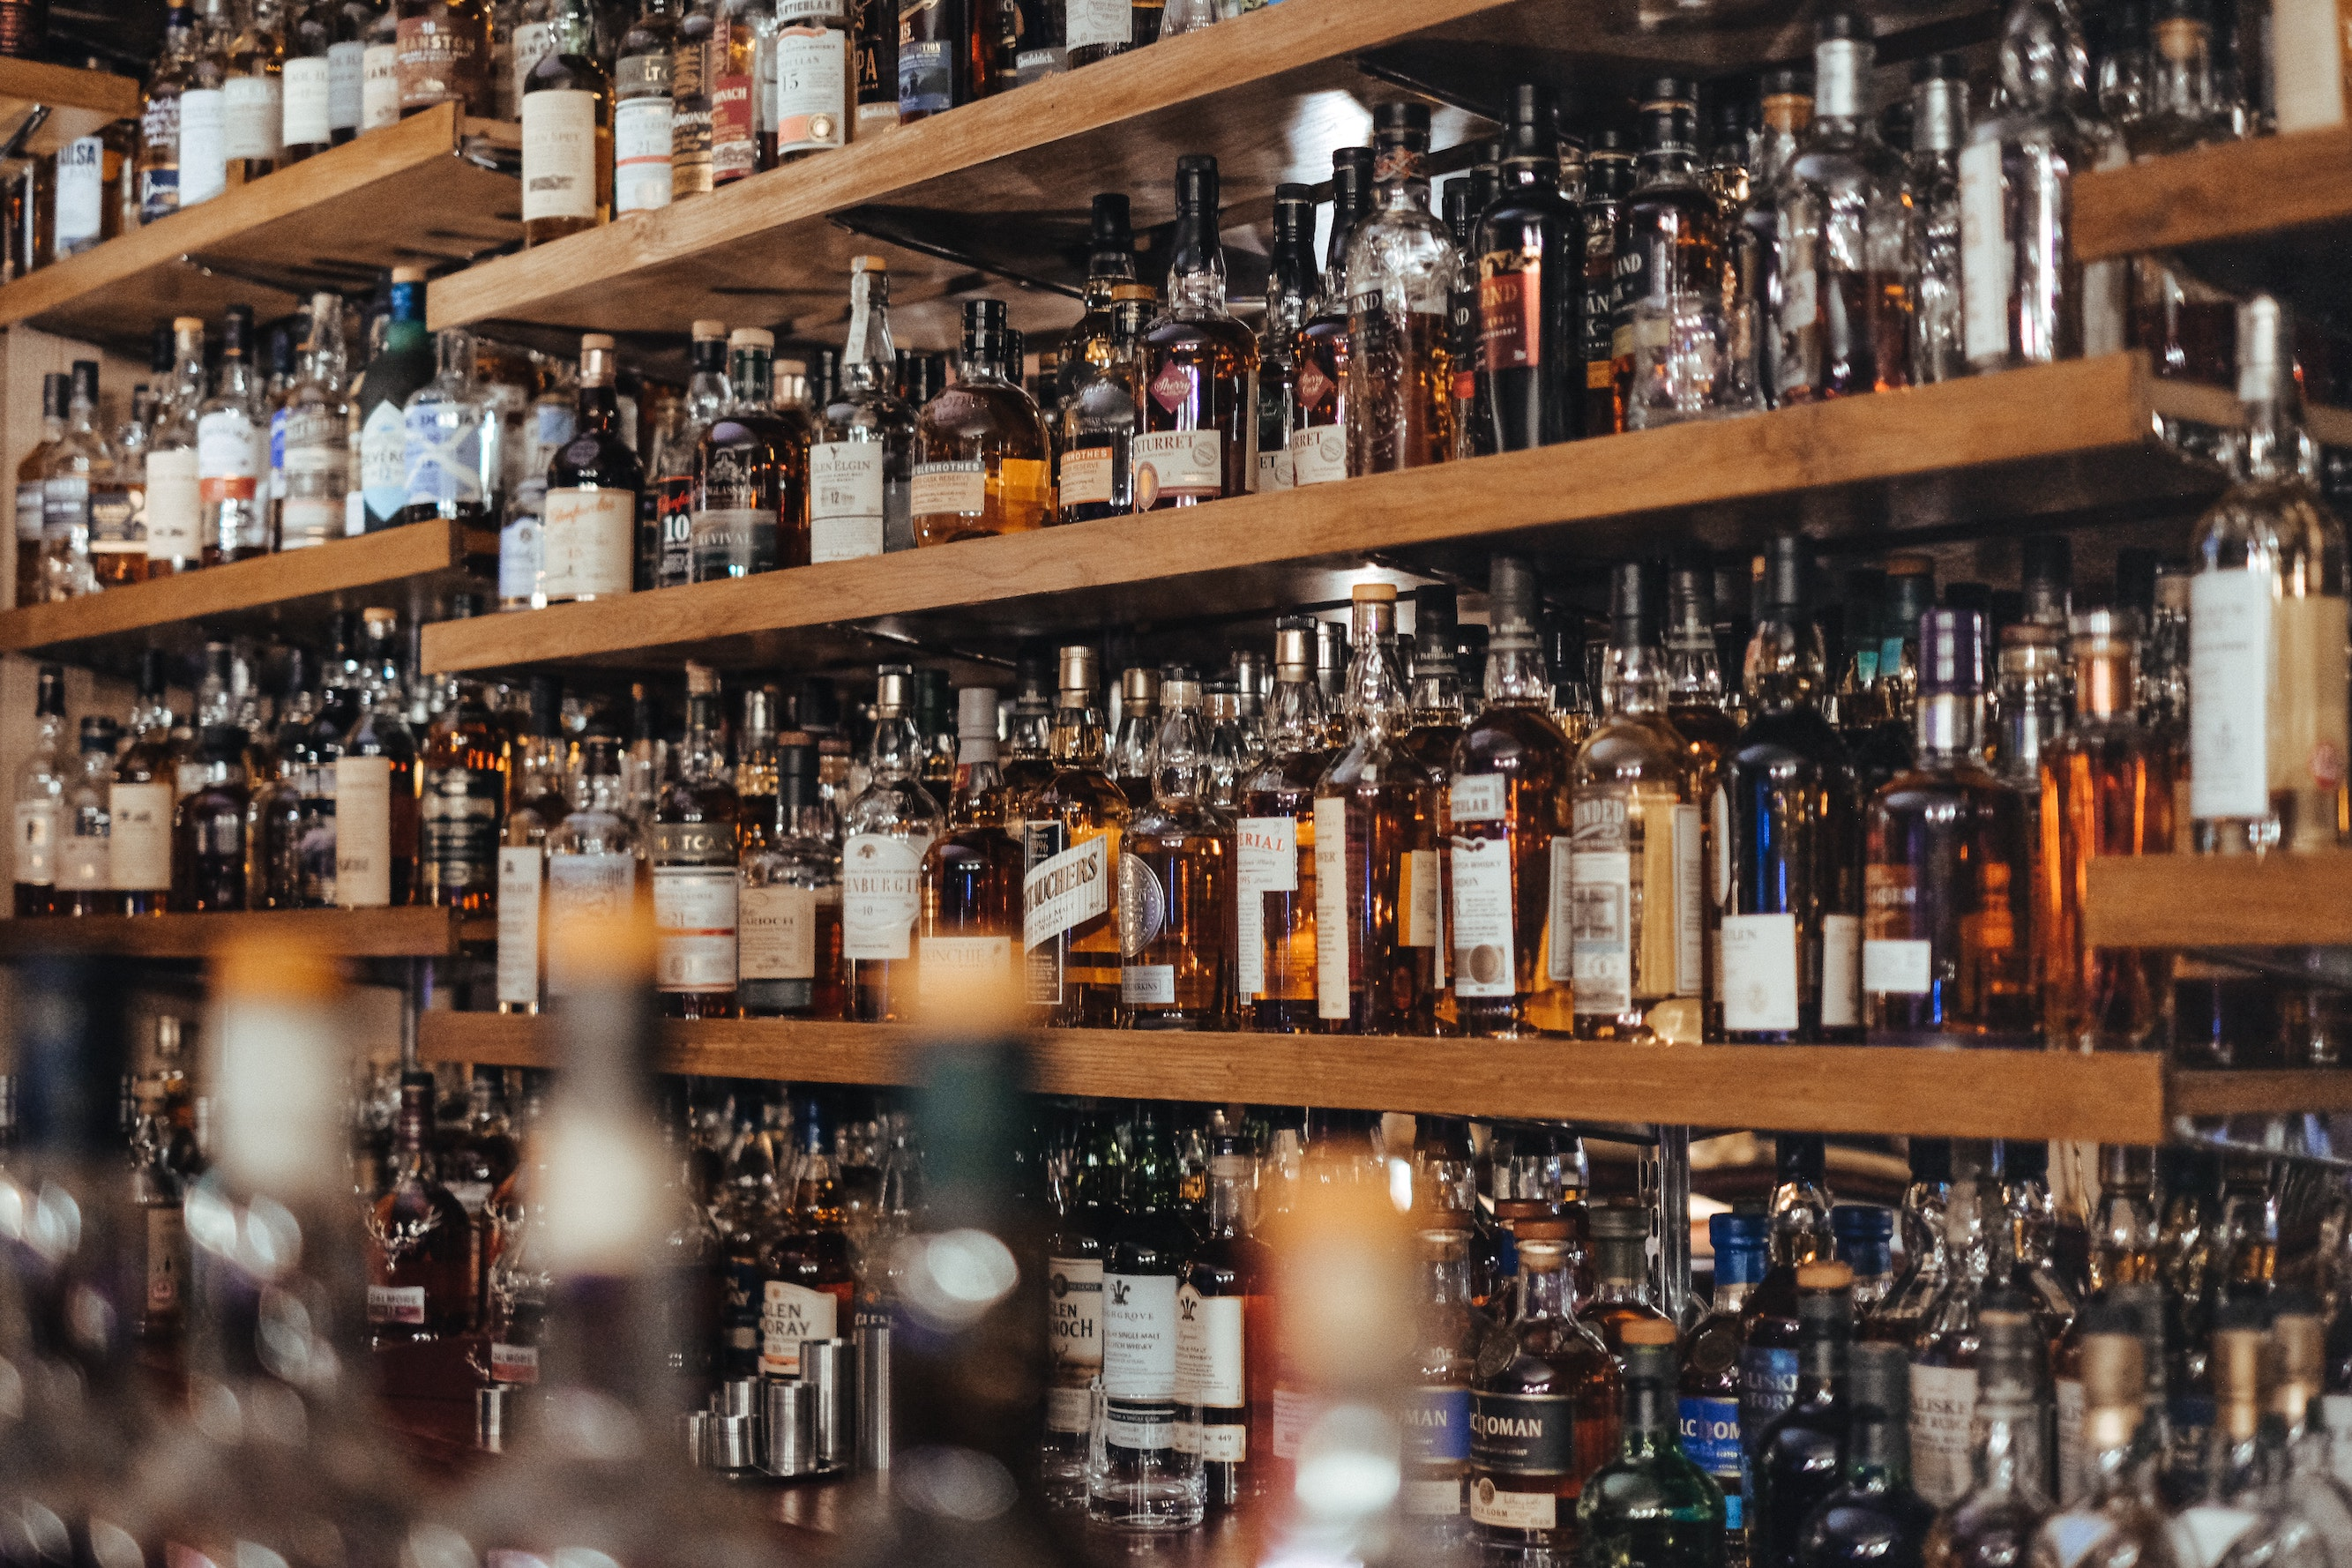 A selection of whisky